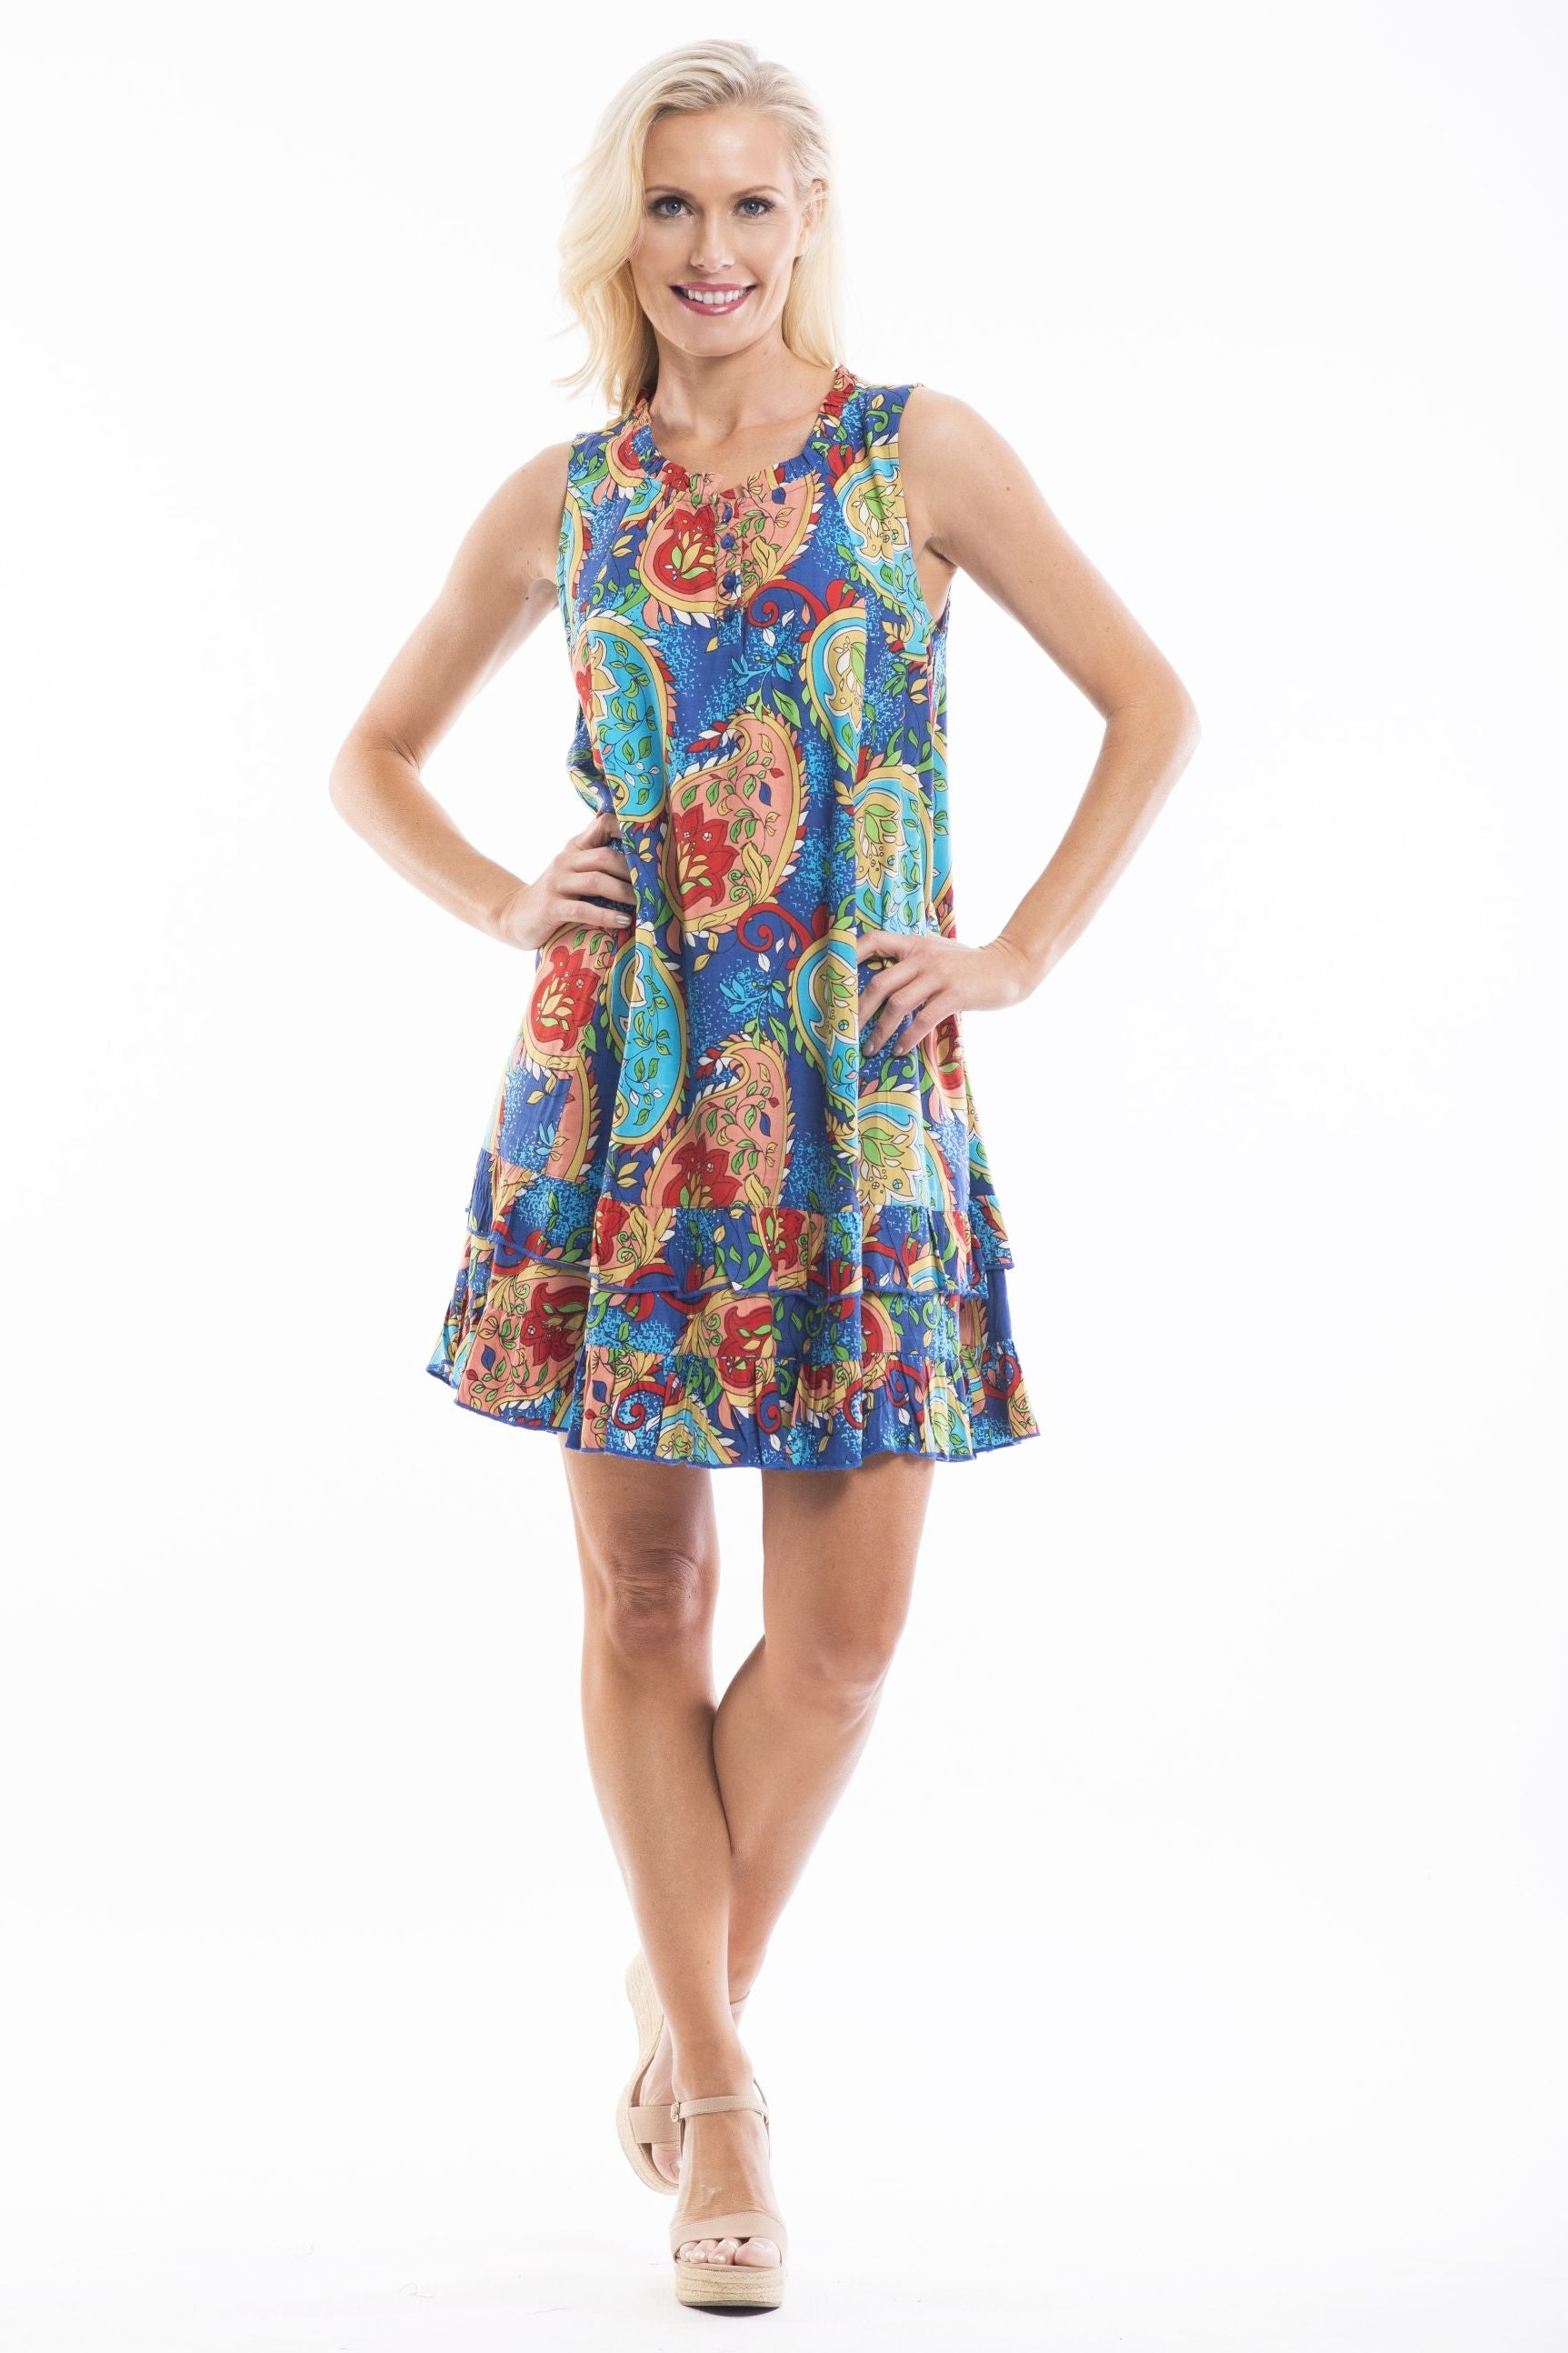 Kaira Joy Tunic Dress - at I Love Tunics @ www.ilovetunics.com = Number One! Tunics Destination